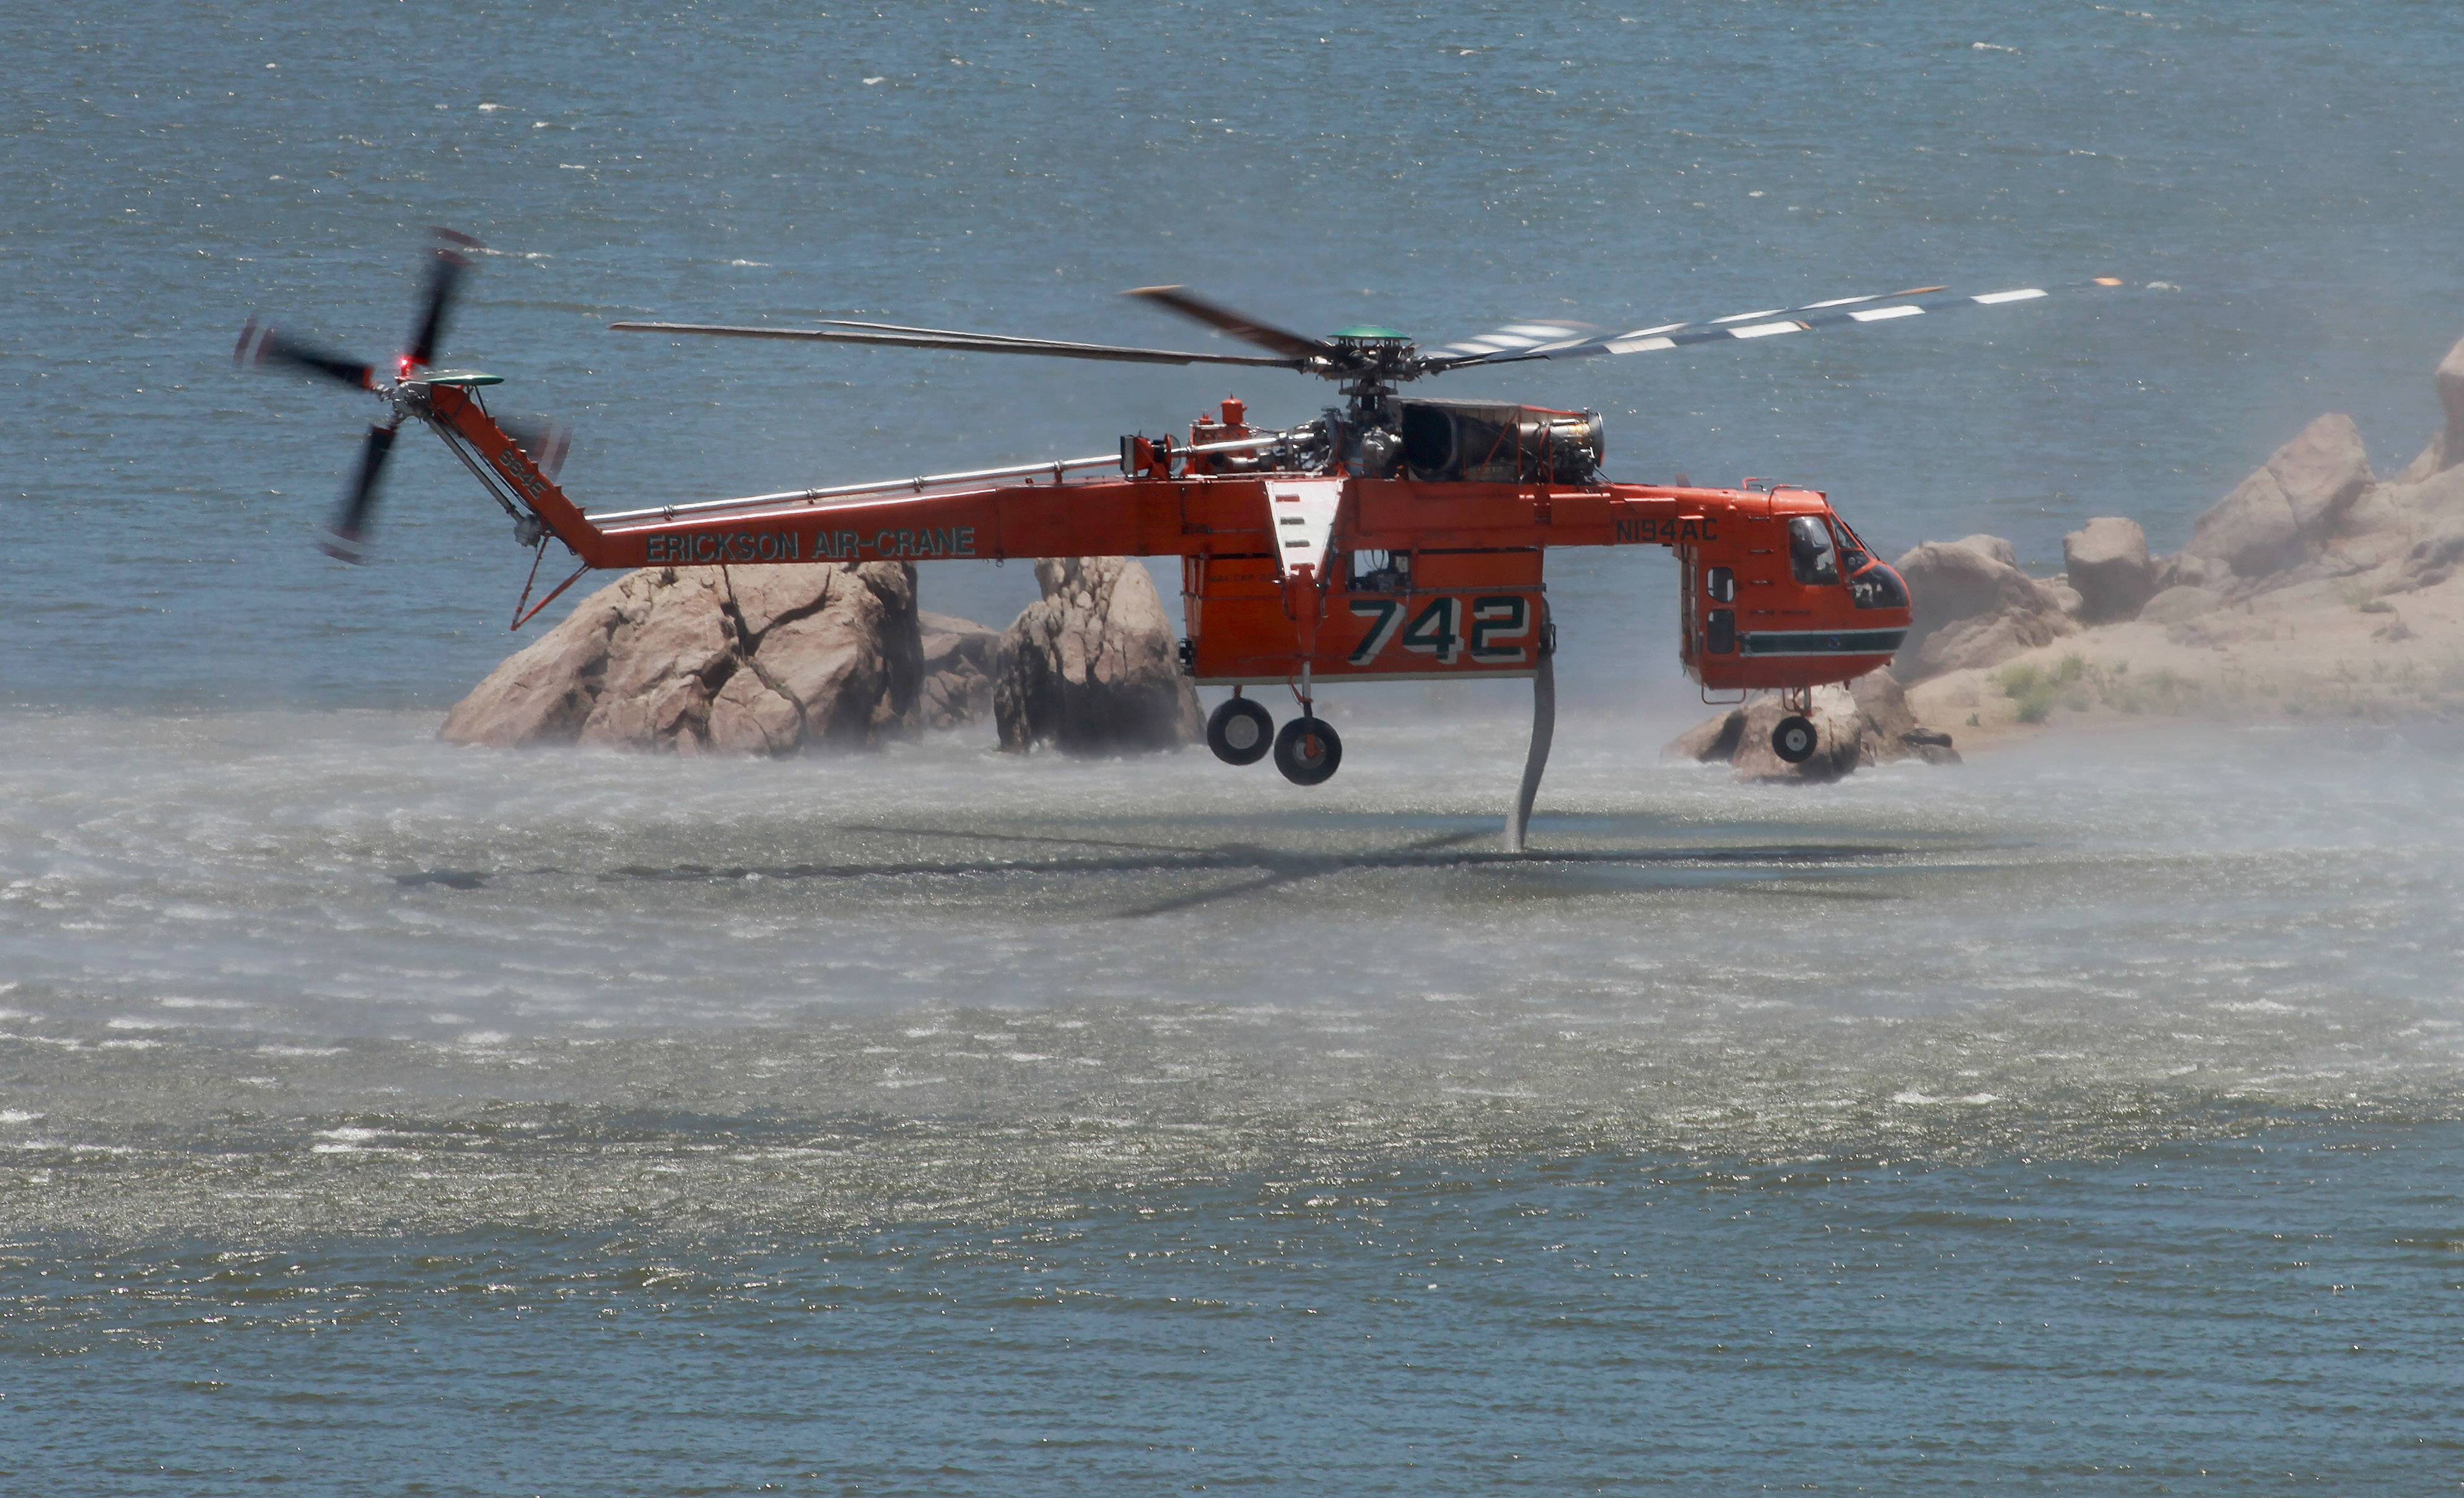 An Erickson Air-Crane loads up from Isabella Lake Sunday before making another water drop on the Shirley Fire that had consumed over 1800 acres as of Sunday afternoon, west of Wofford Heights, Calif.